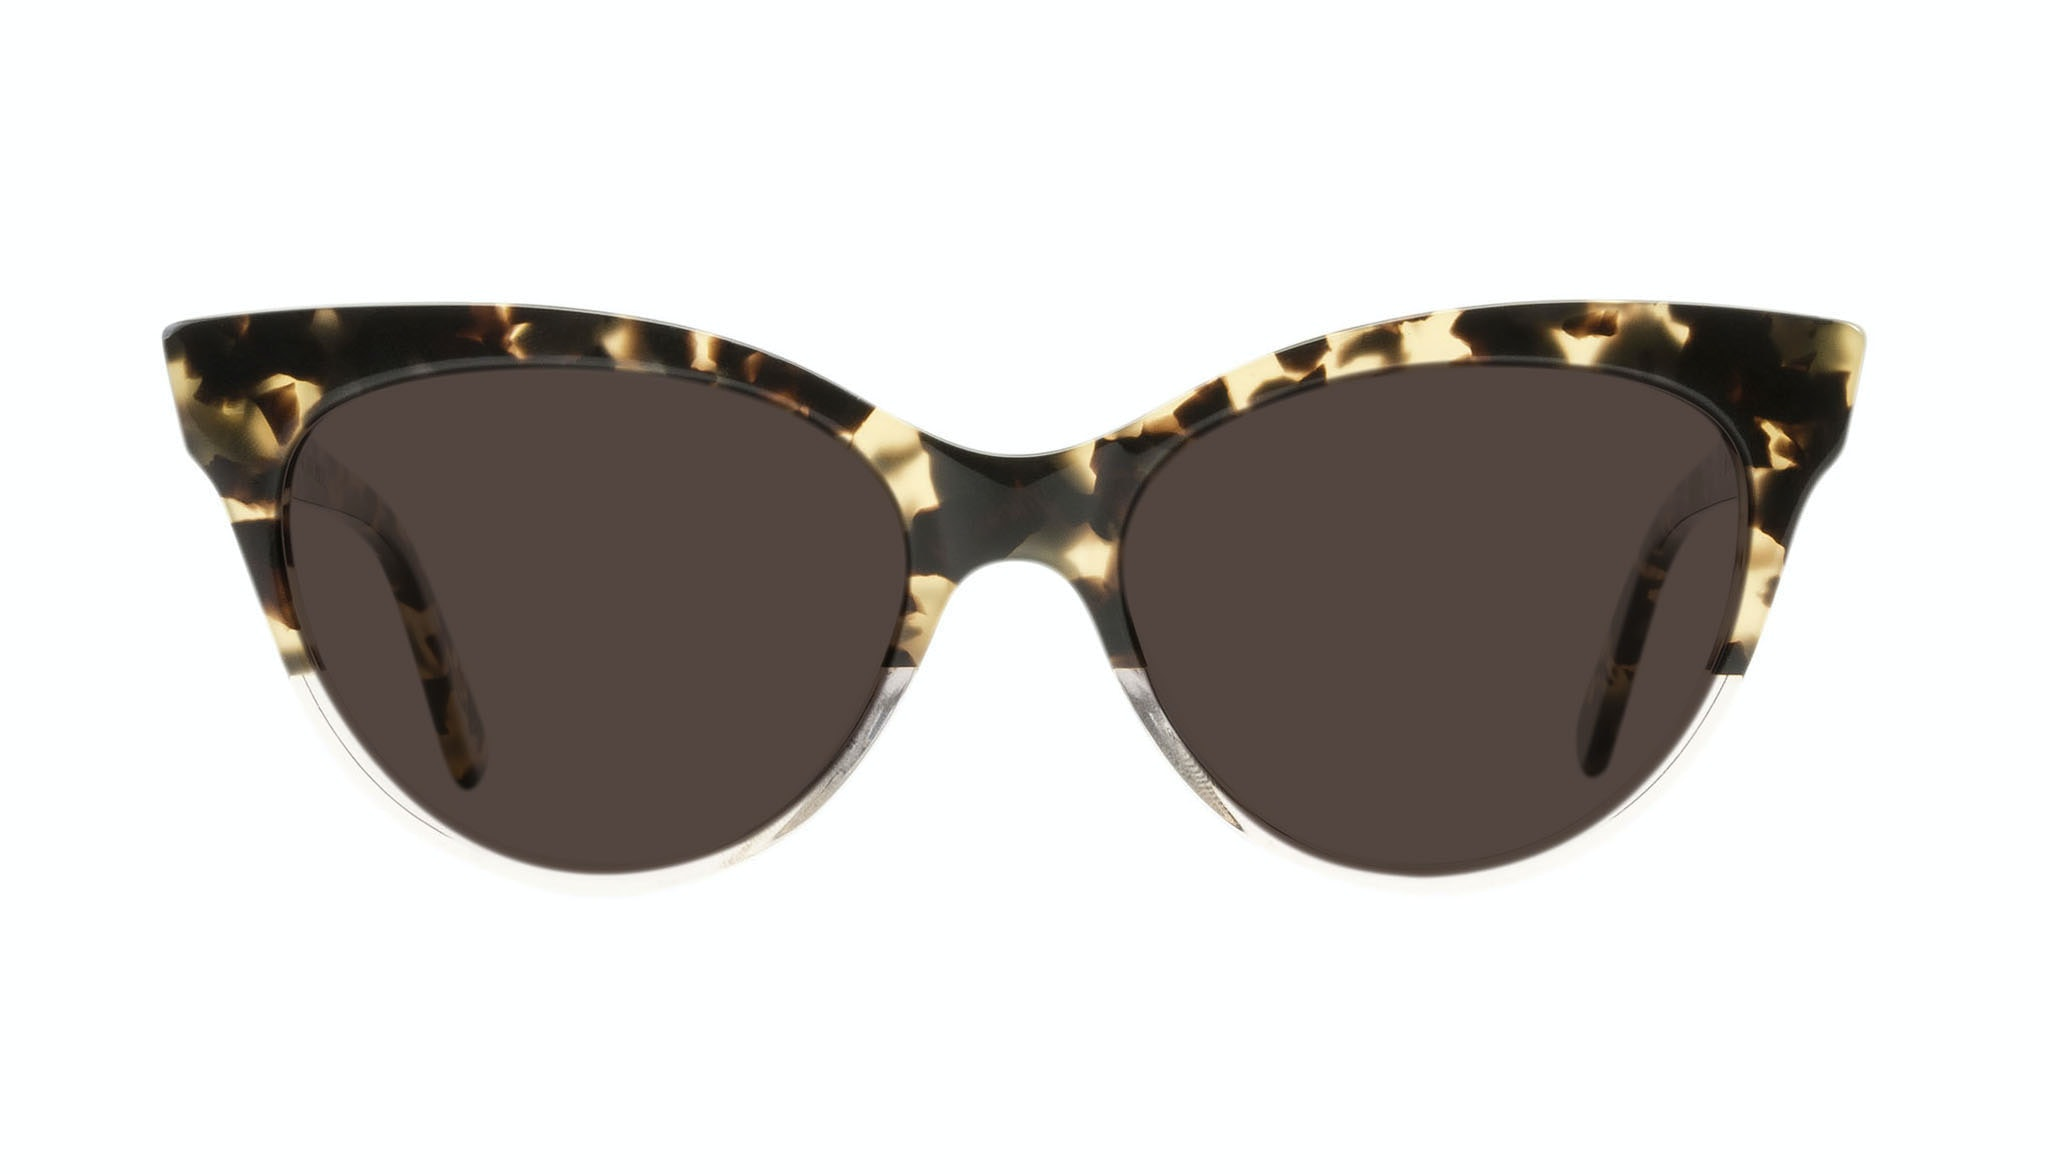 Affordable Fashion Glasses Cat Eye Daring Cateye Sunglasses Women SkunkBoy Champagne Tort Front